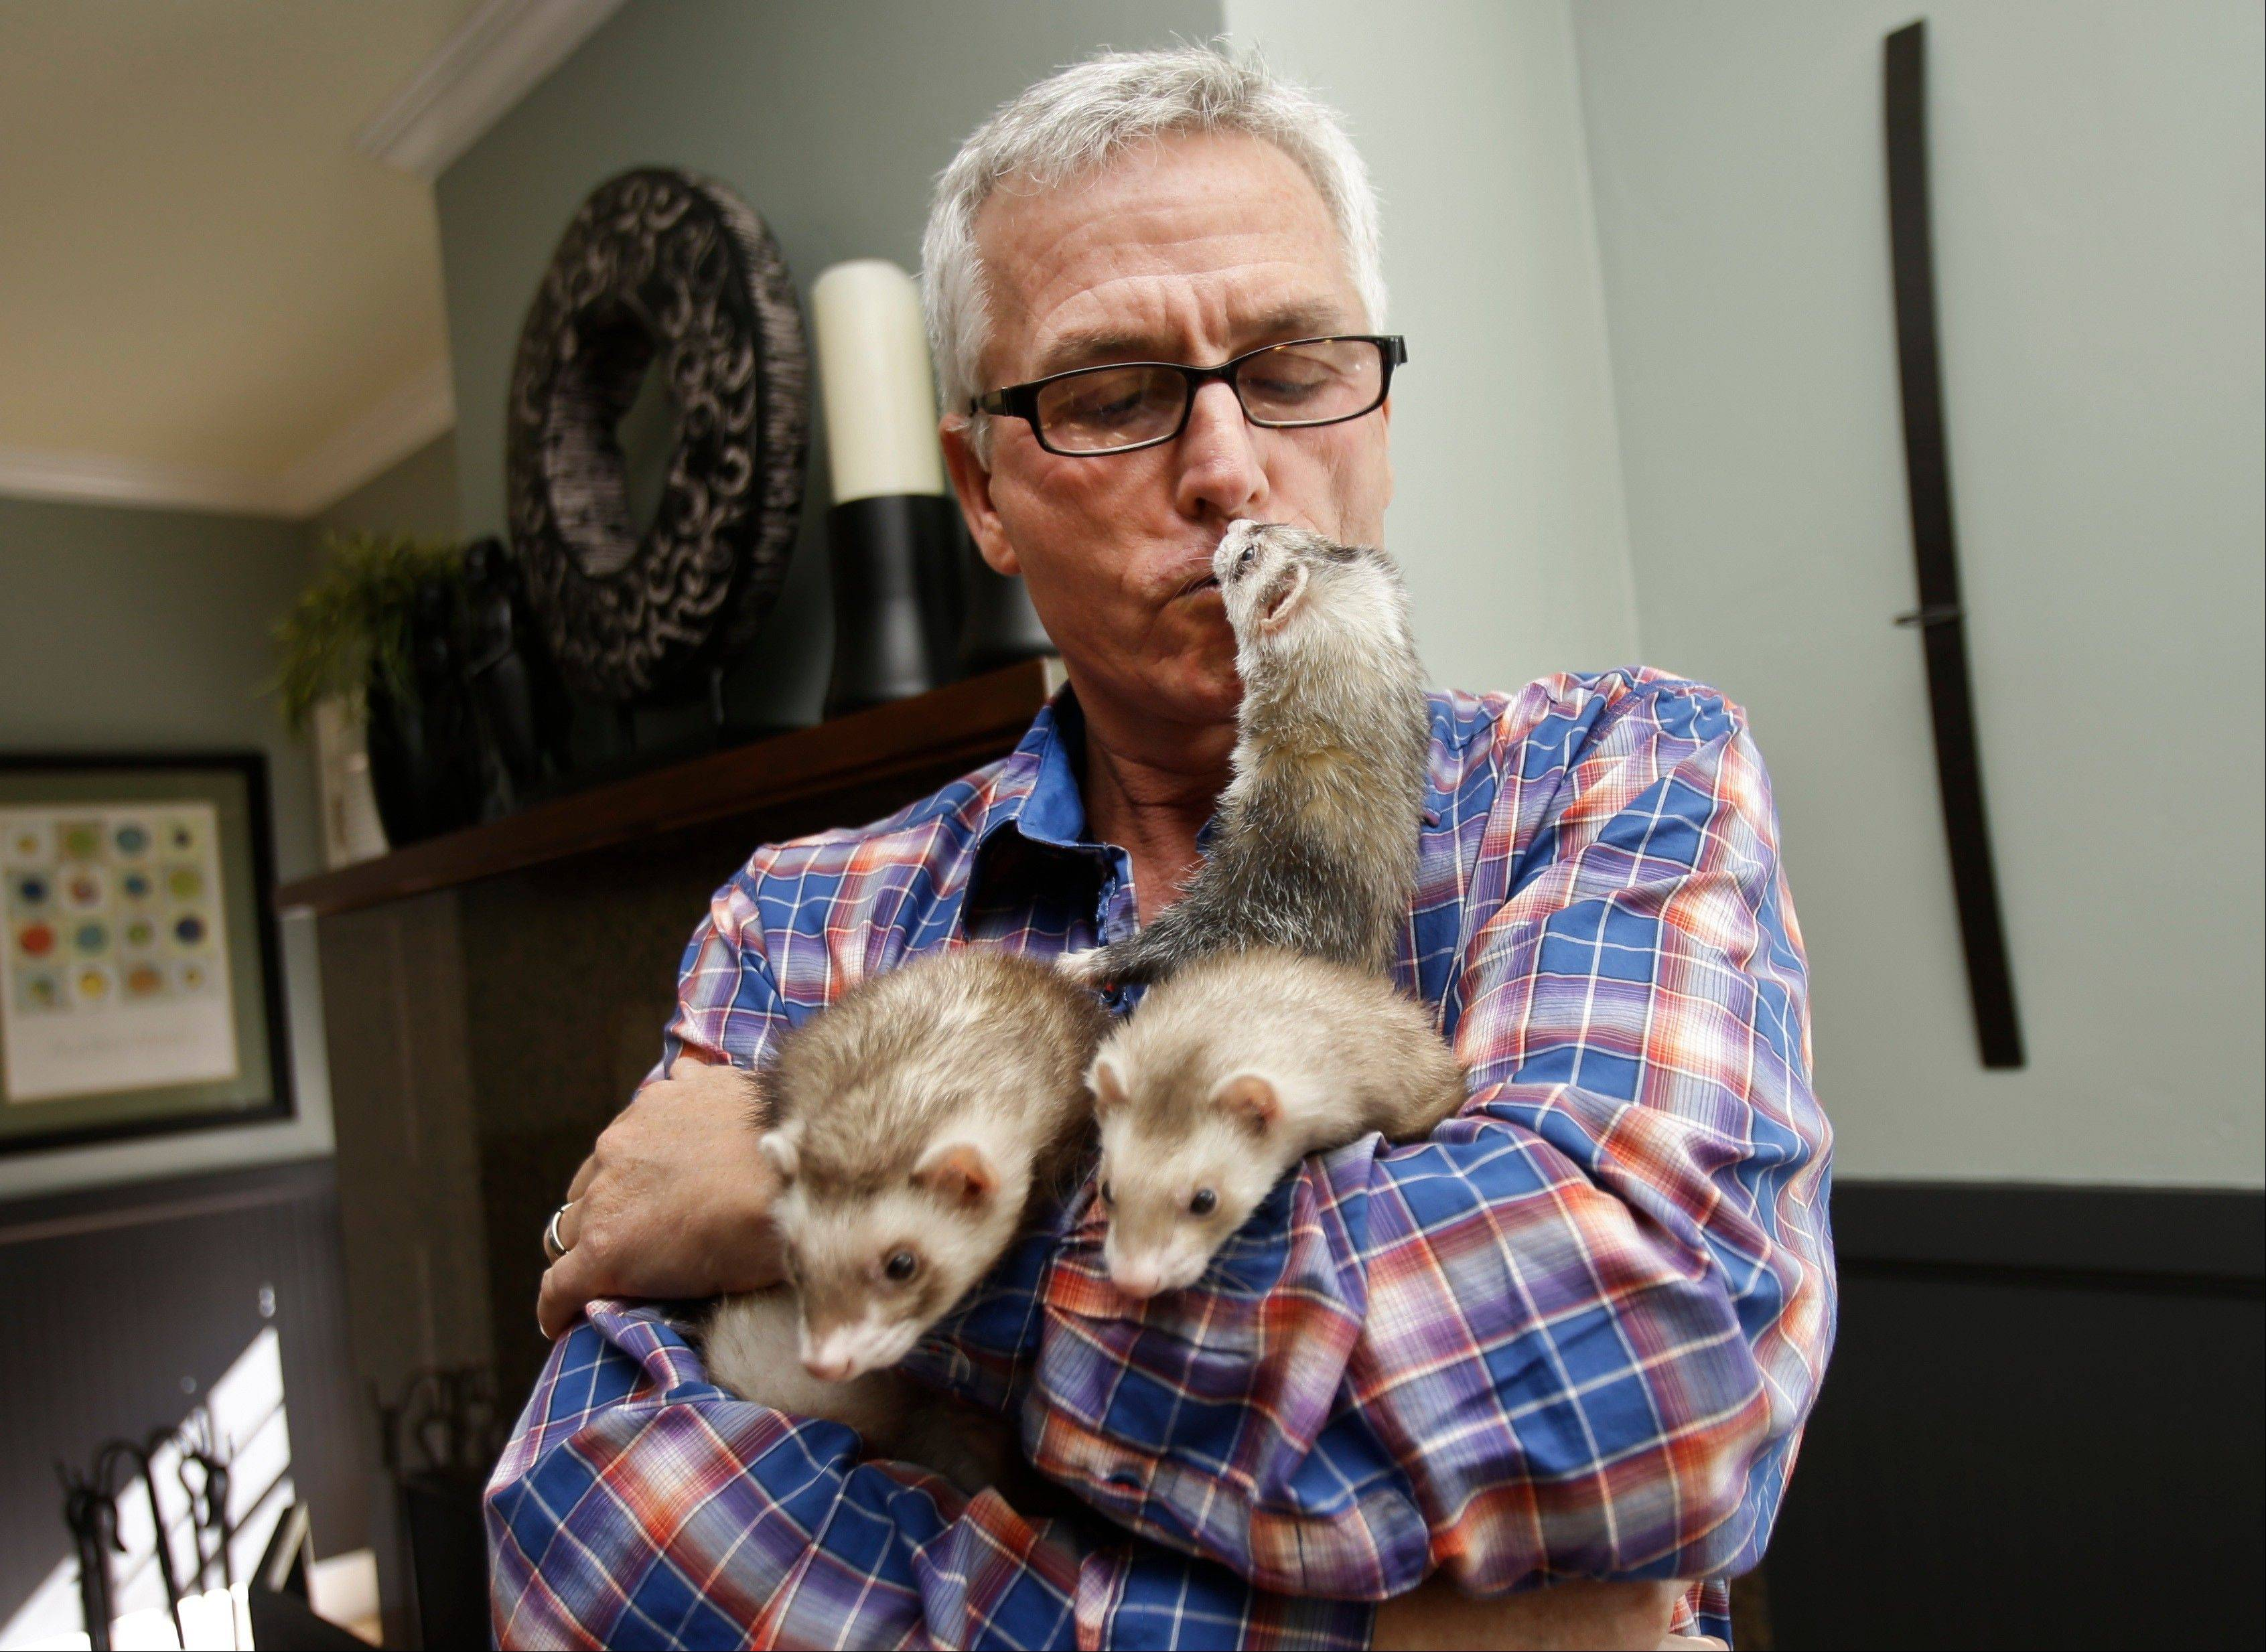 Pat Wright, an advocate for legalizing ferret ownership in California, gets a kiss from one his three ferrets at his home in La Mesa, Calif.